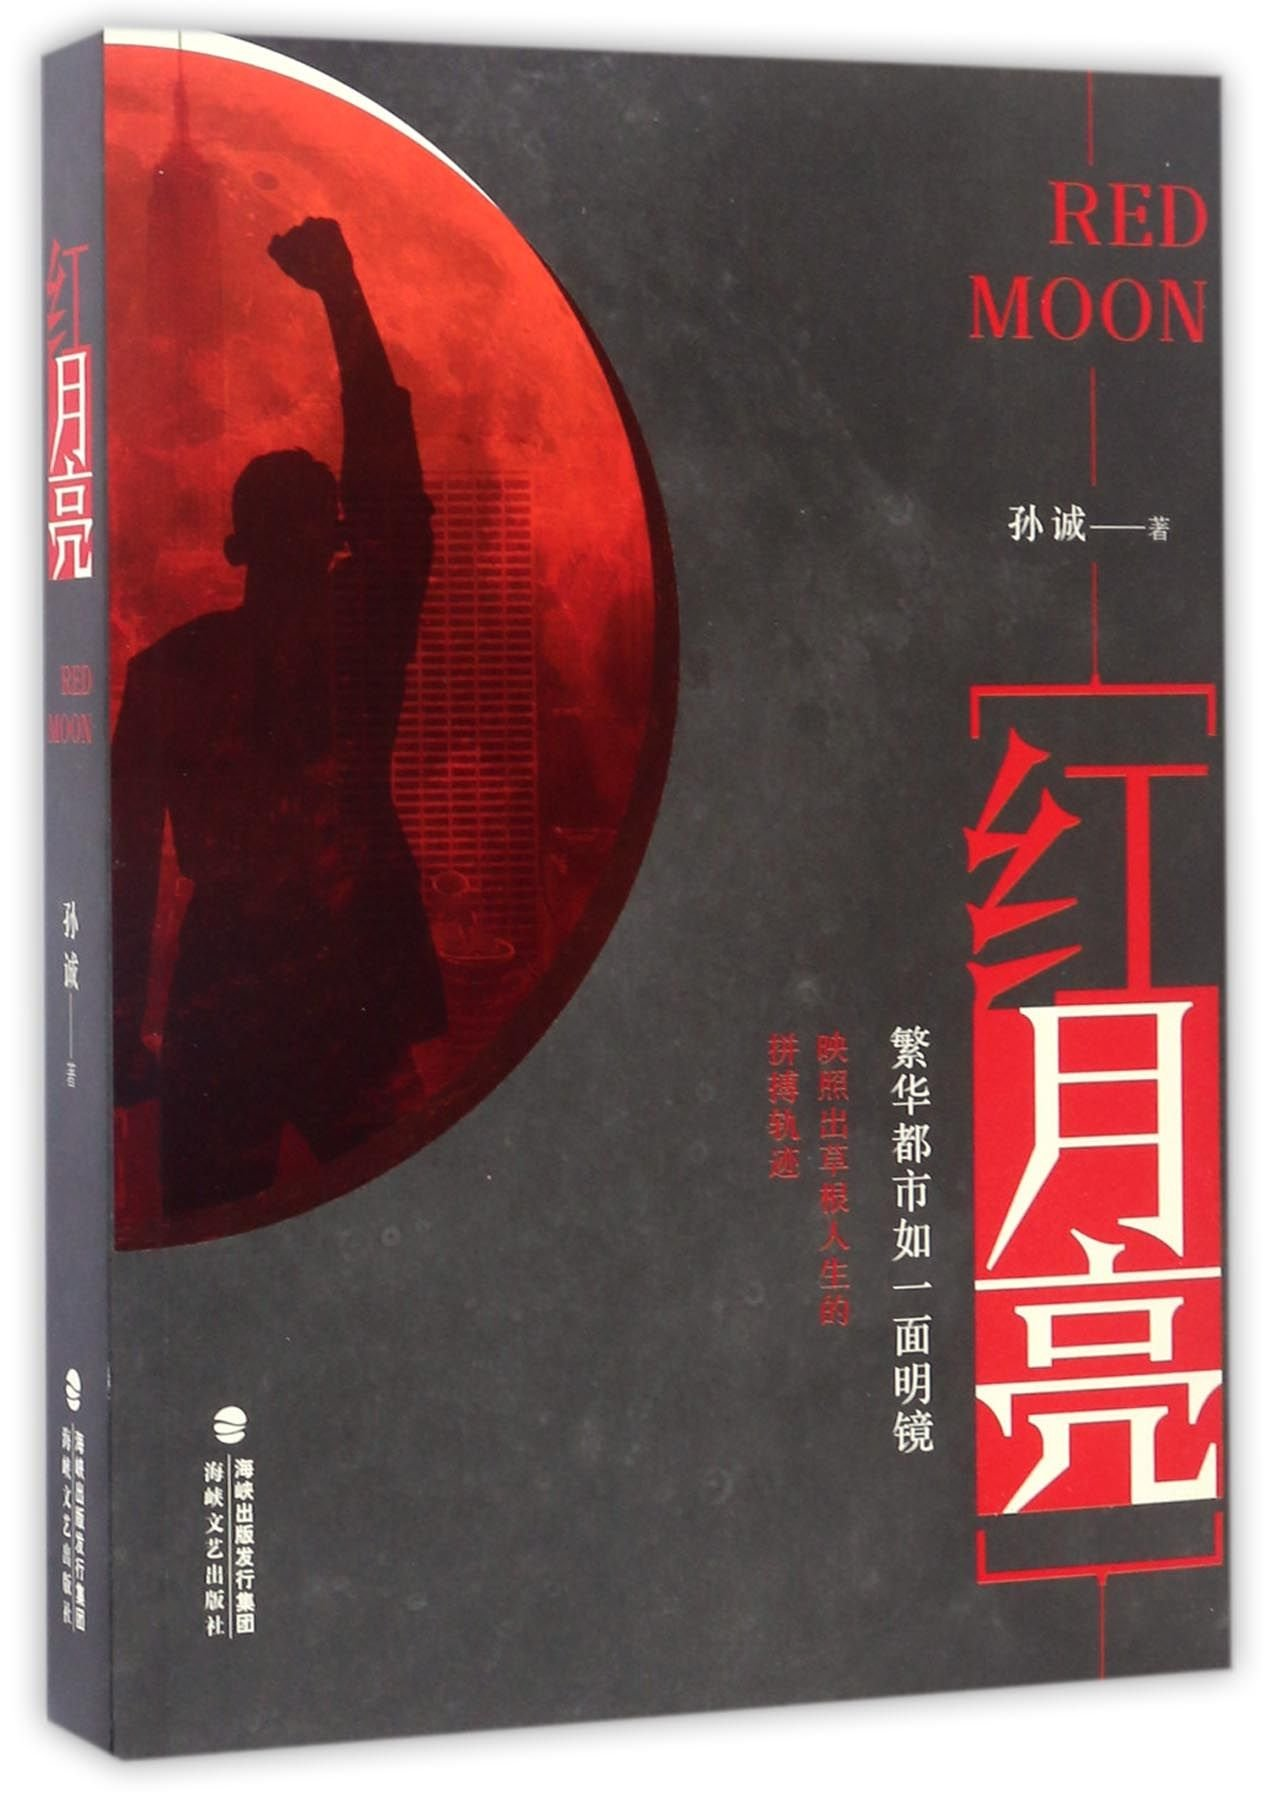 Red Moon (Chinese Edition) pdf